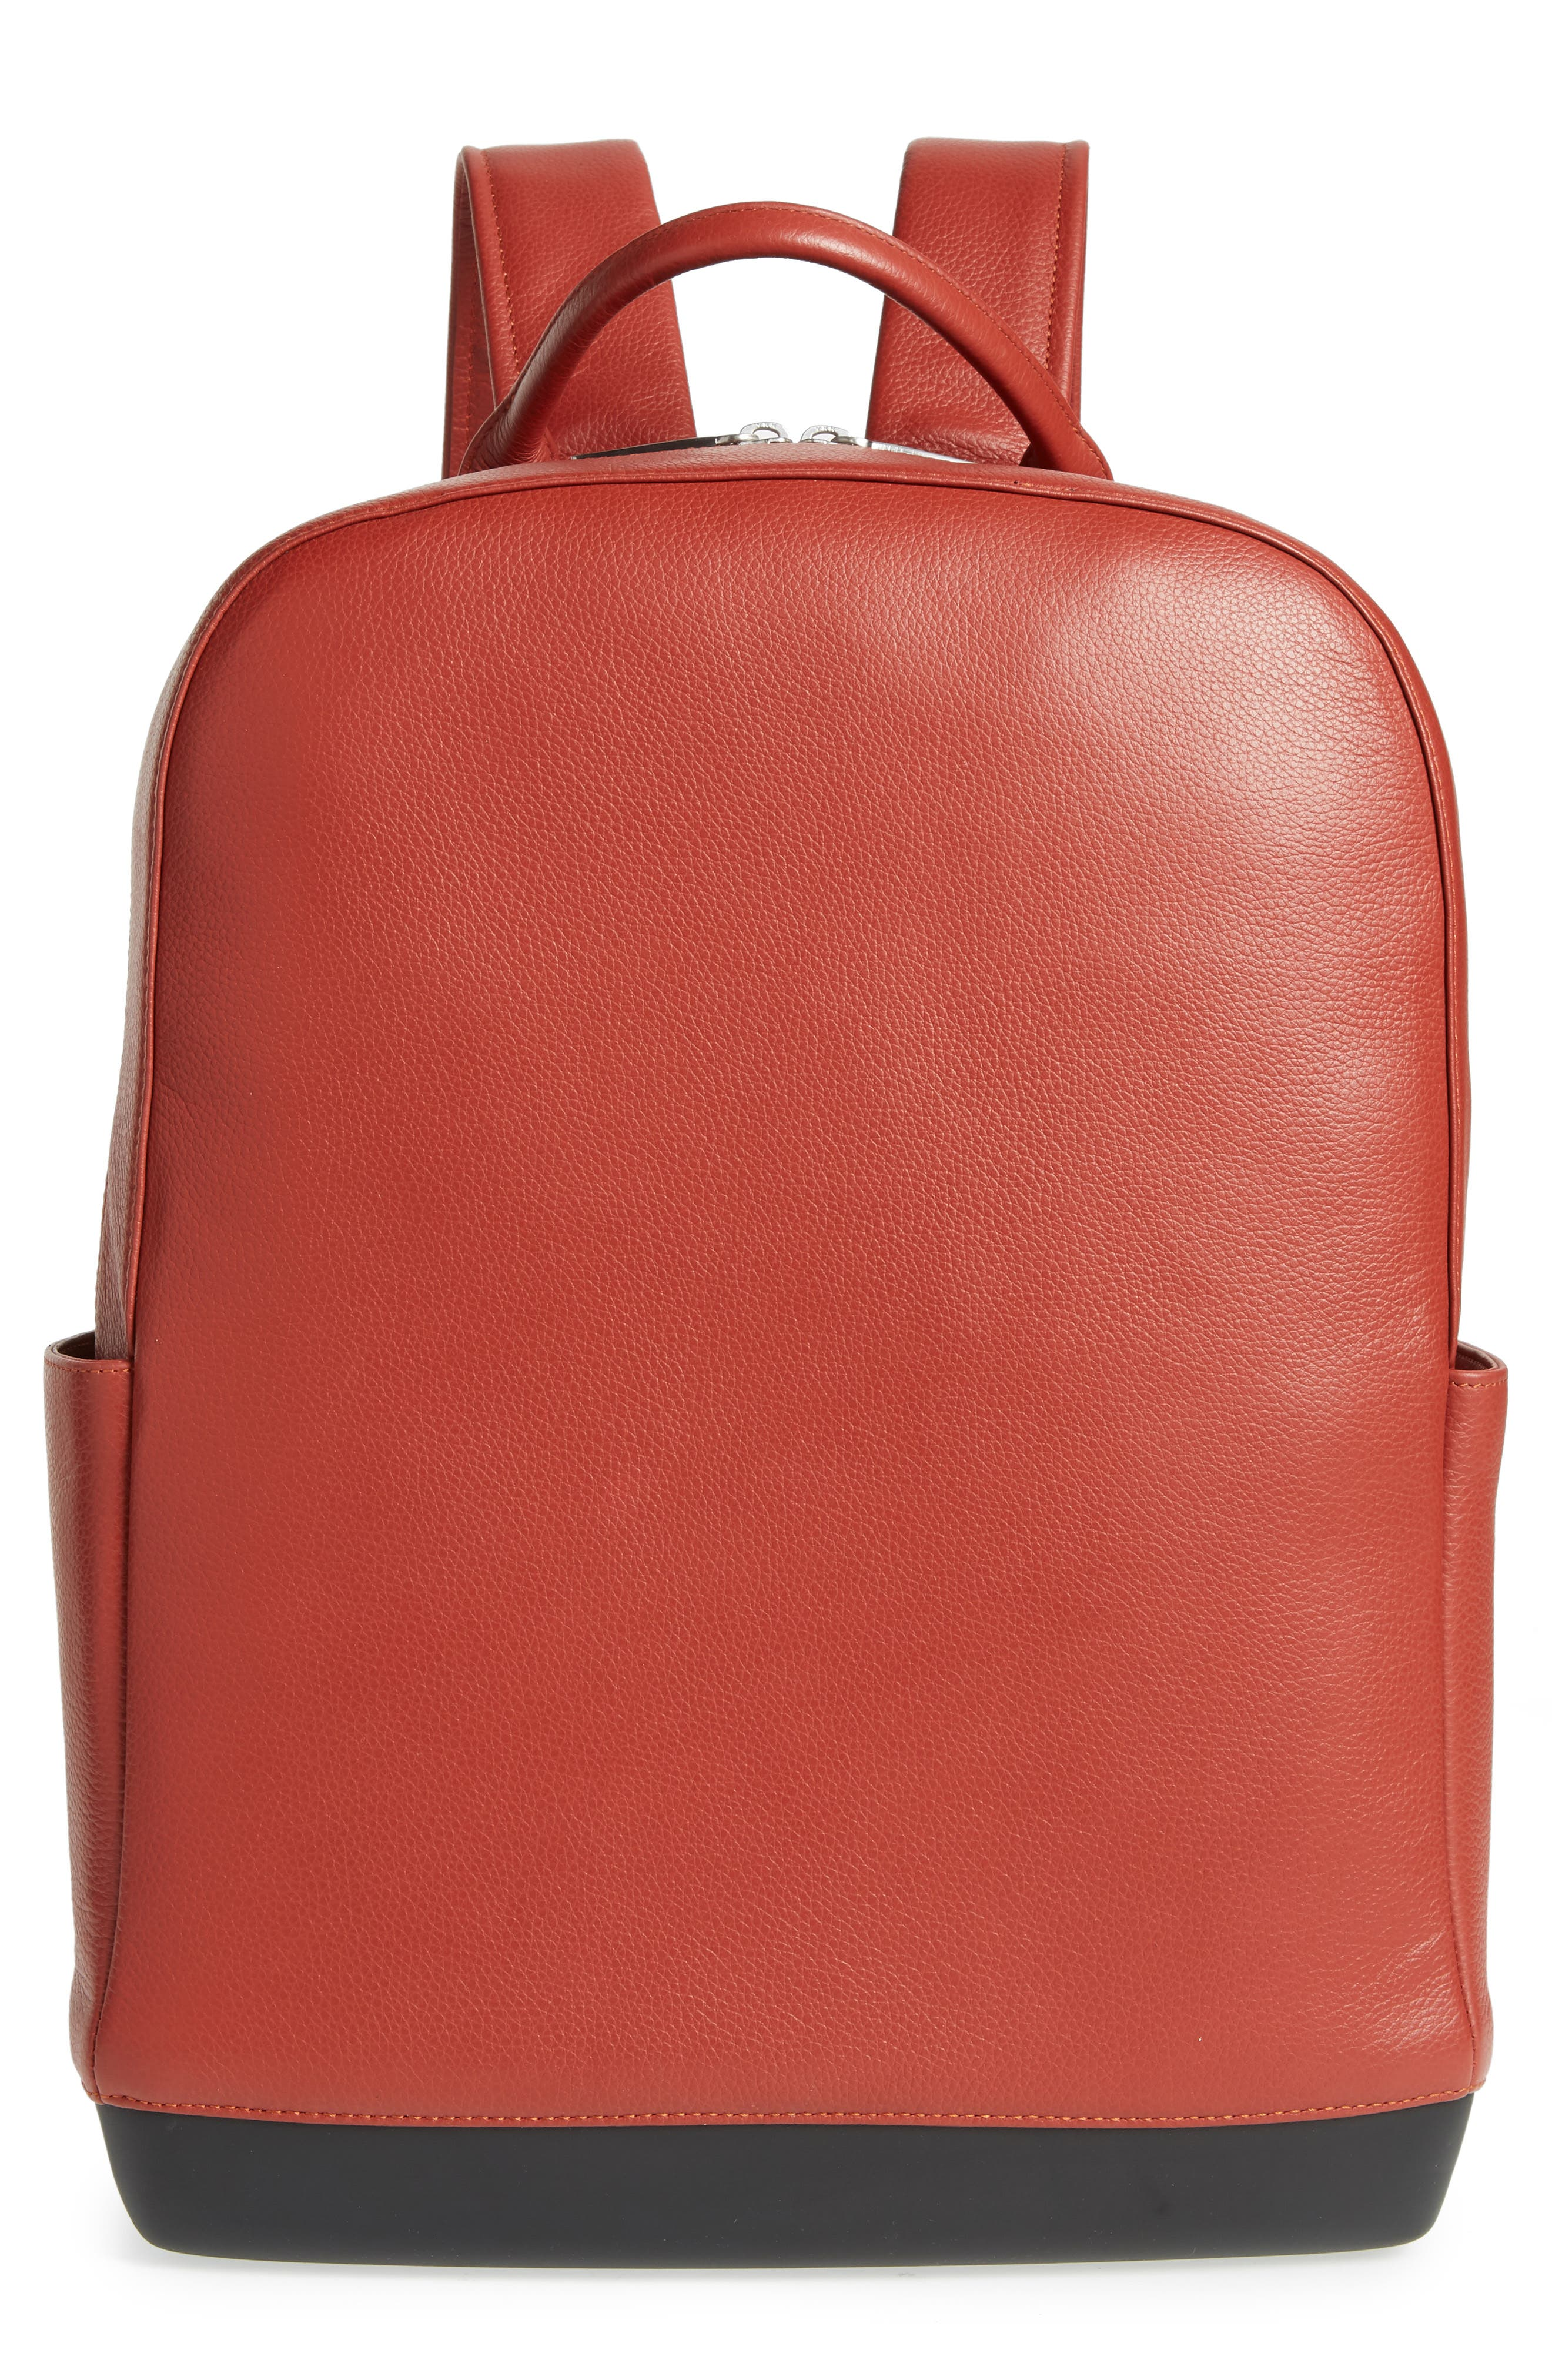 Leather Backpack,                             Main thumbnail 1, color,                             TERRACE RED